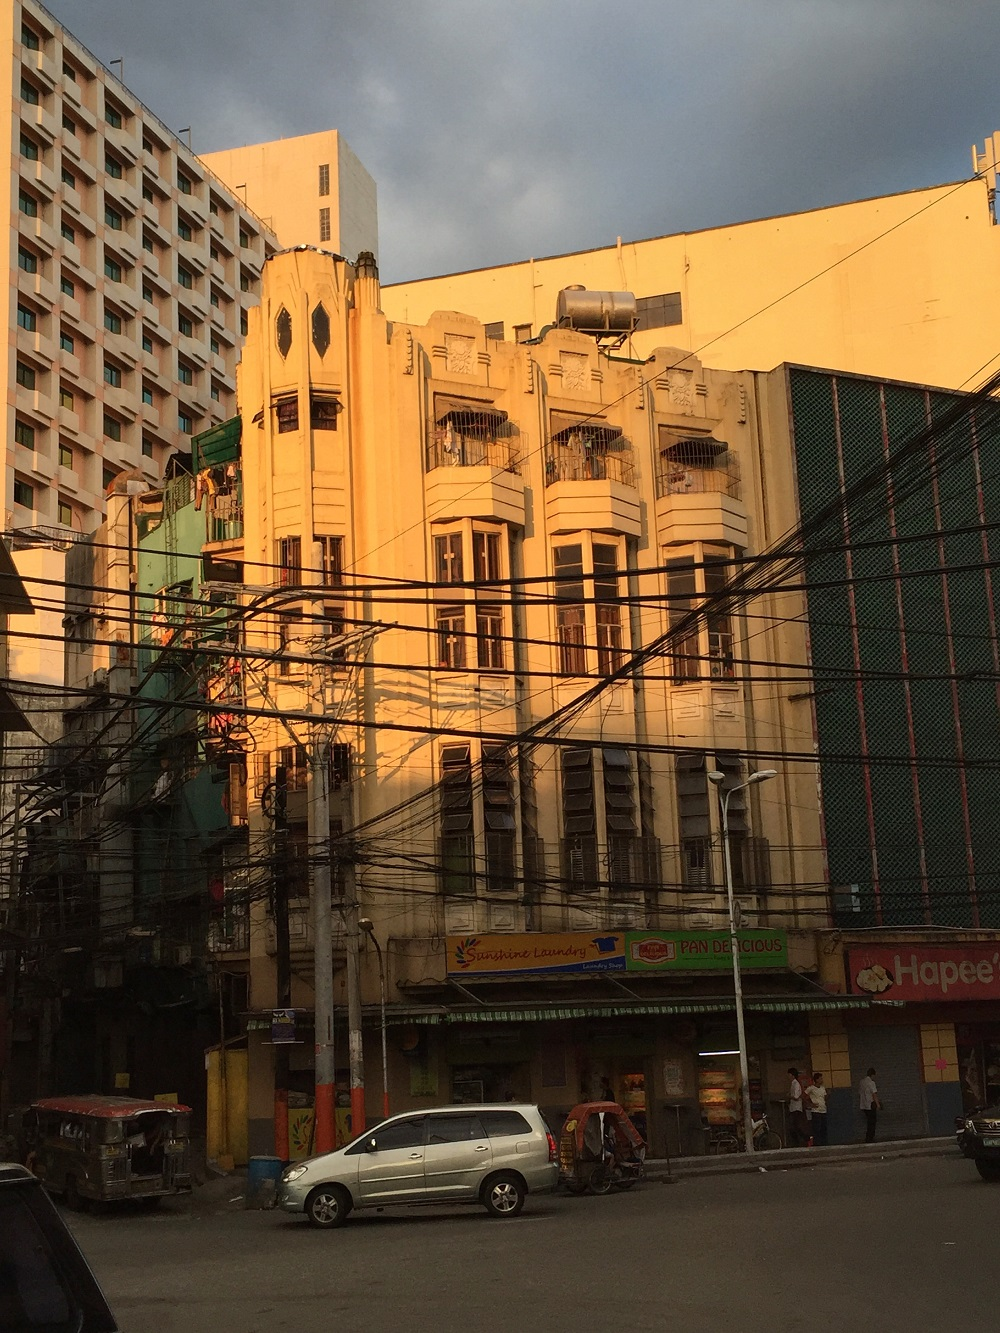 an art deco building in Manila, on the Escolta, Philippines